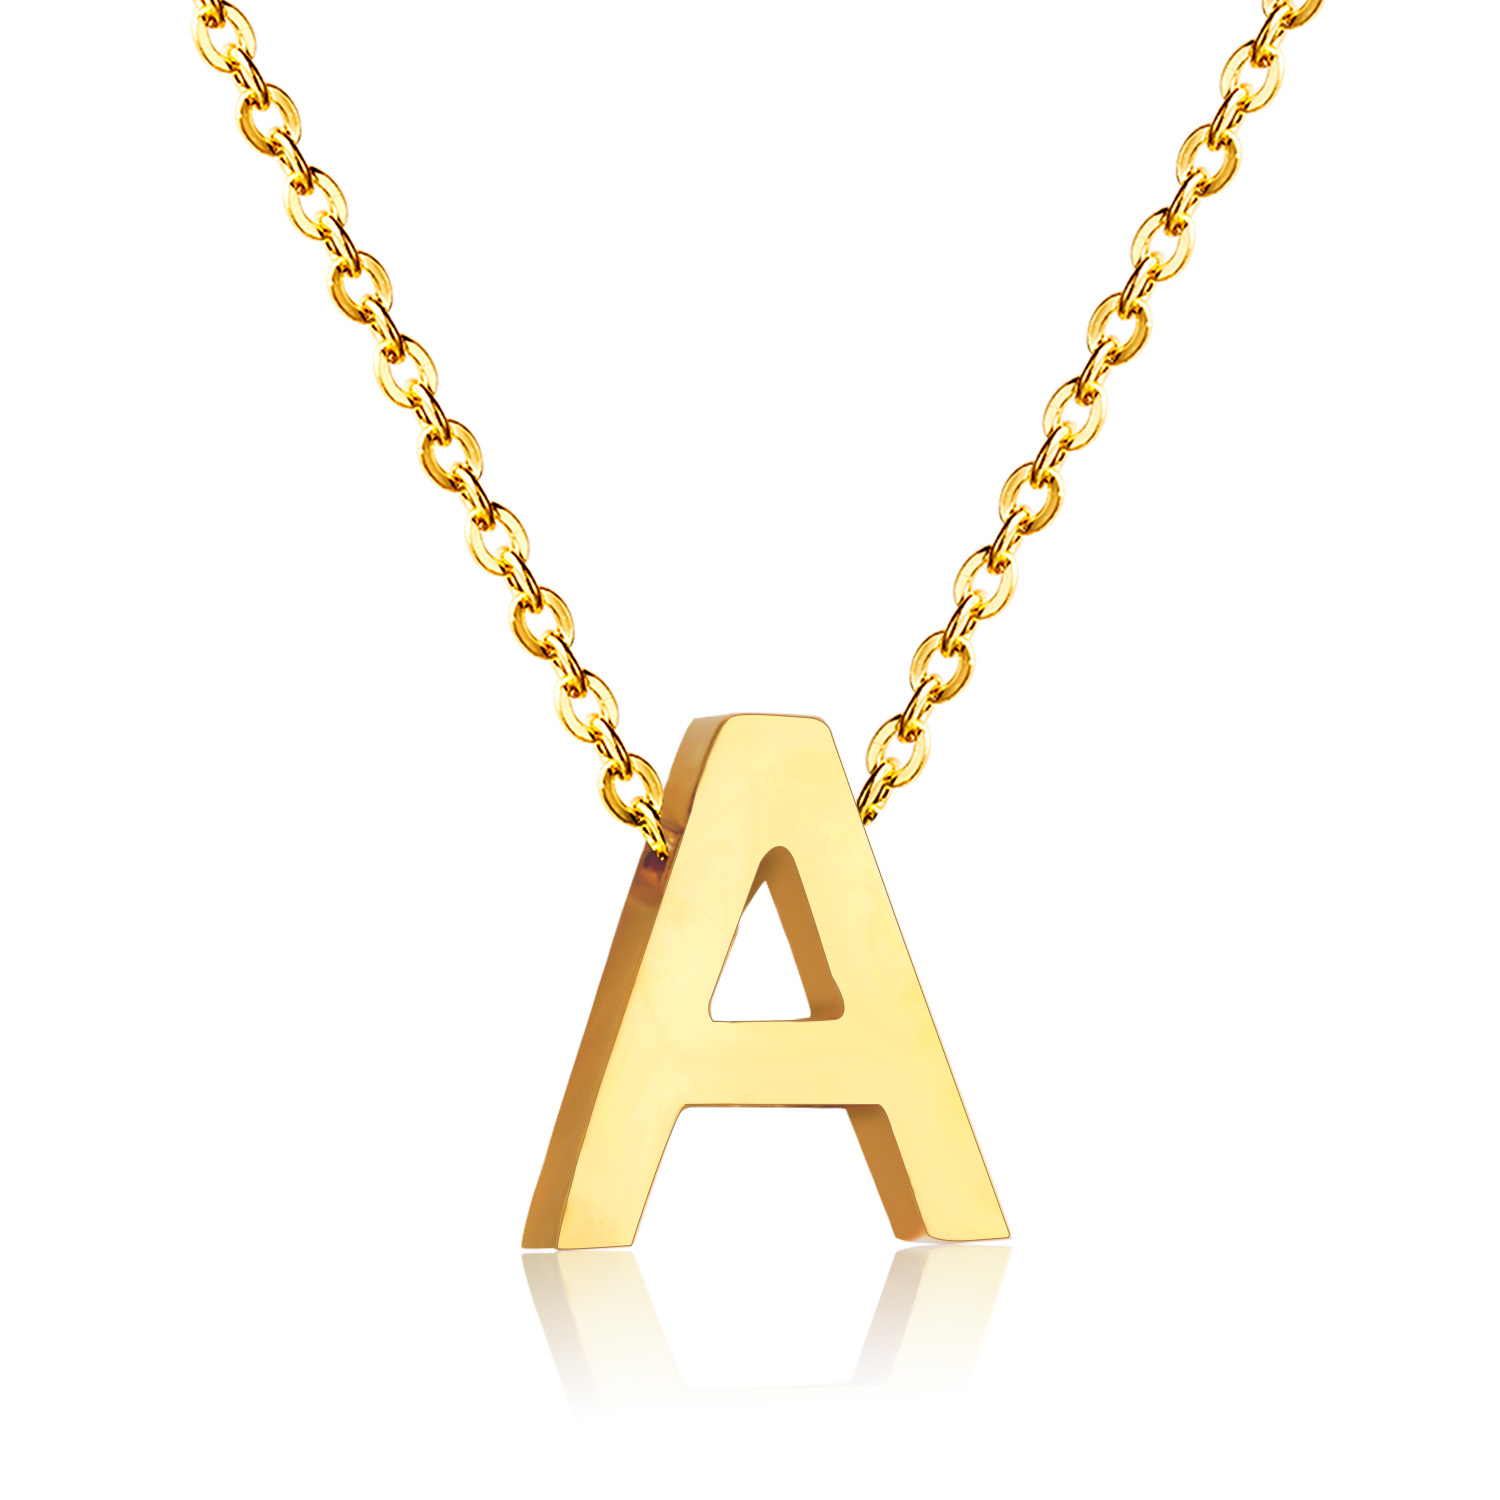 Fashion stainless steel initial necklace silver gold for Custom letter necklace gold